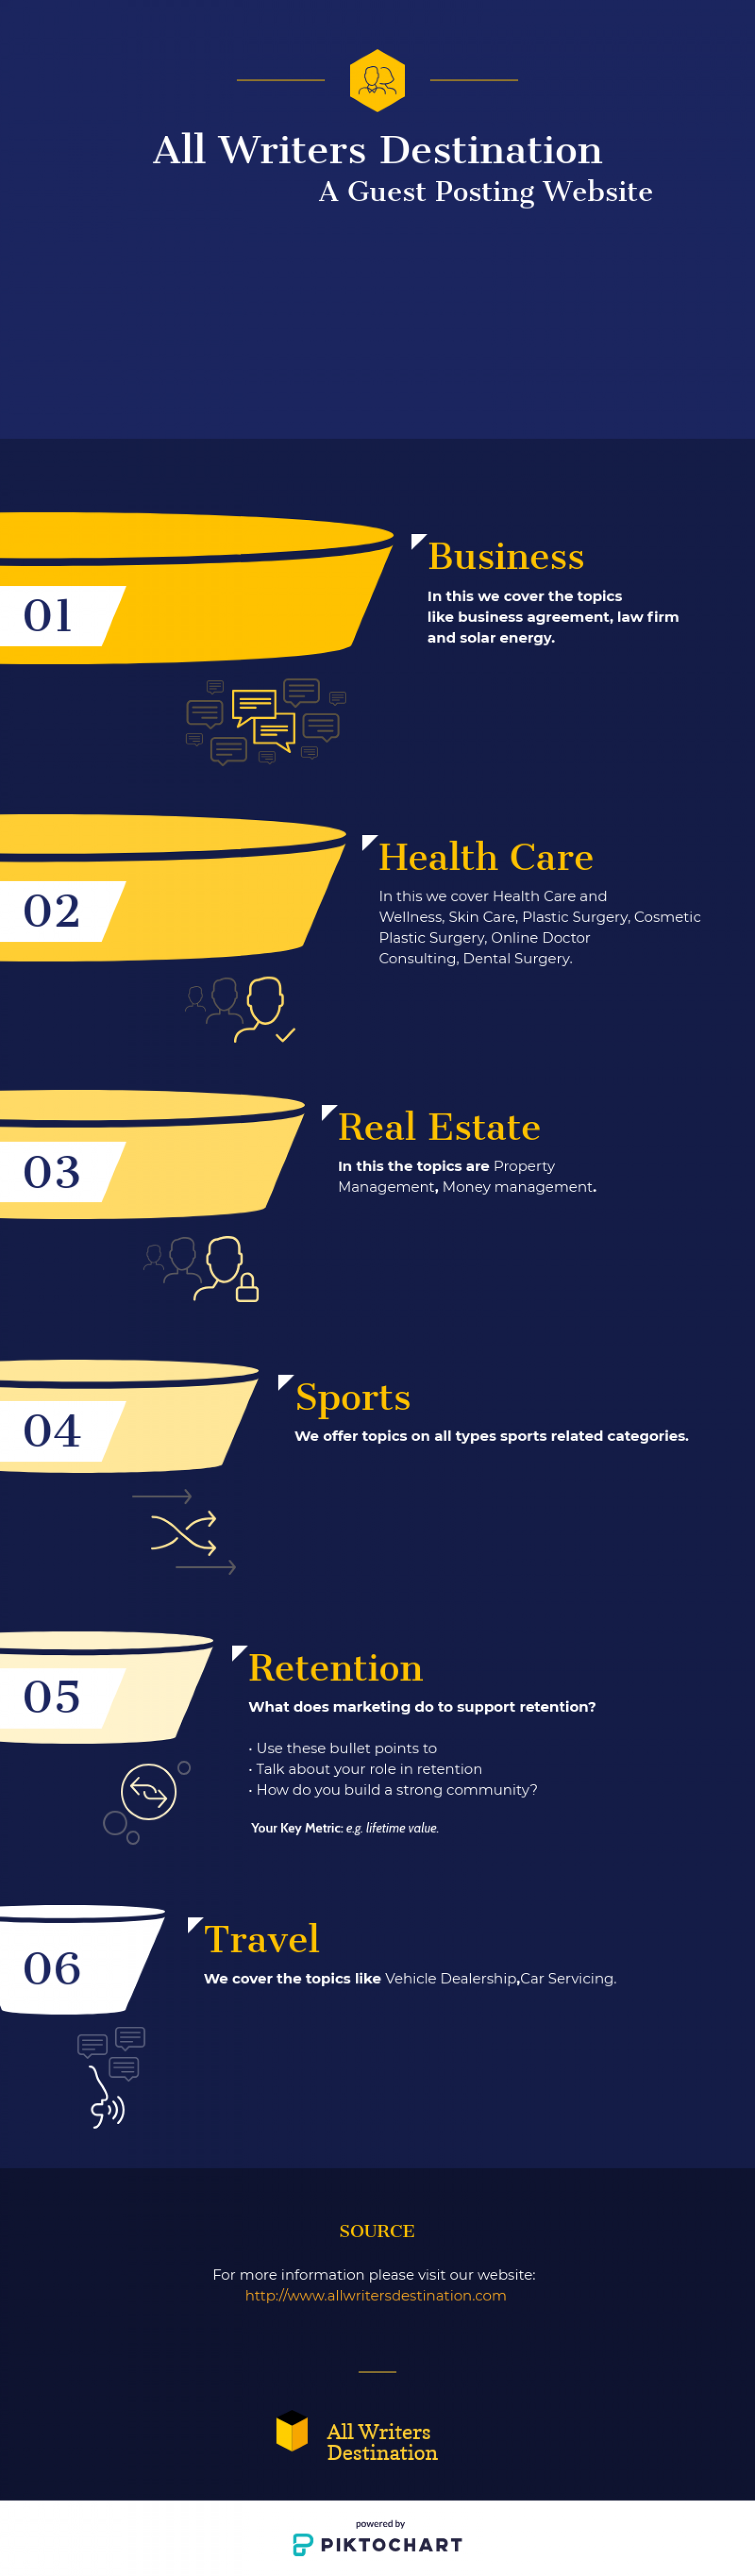 Guest posting sites Infographic